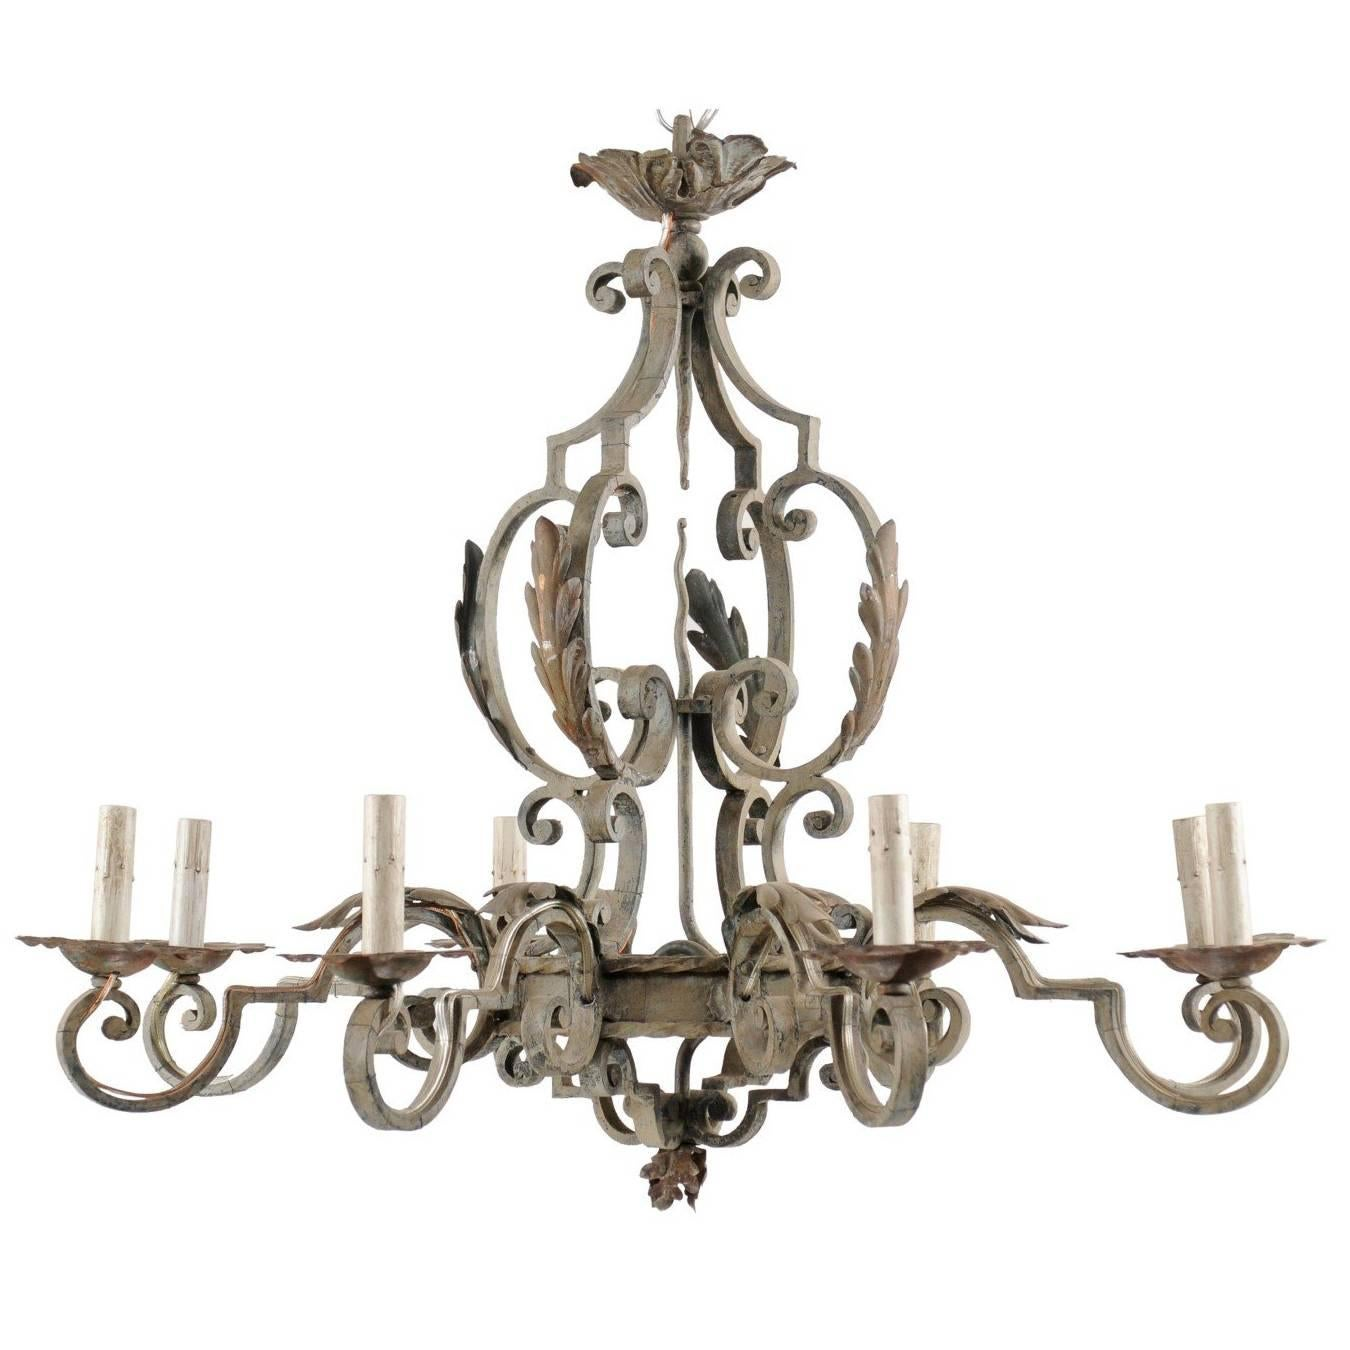 French Painted Iron Chandelier with Scroll and Acanthus Leaf Motifs